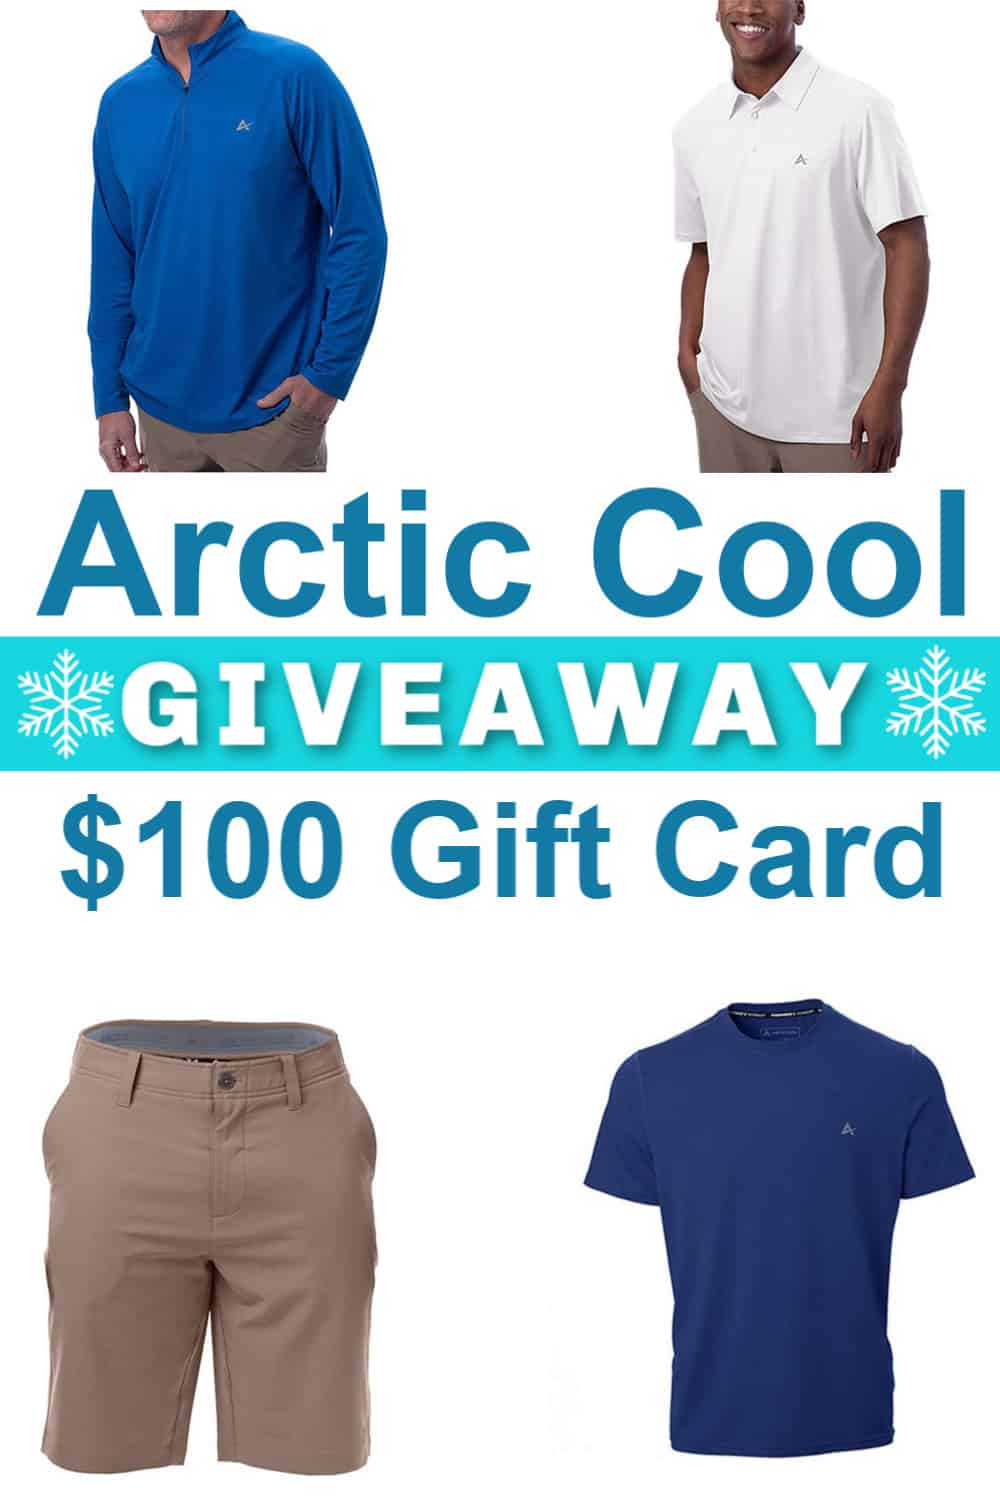 Arctic Cool giveaway image